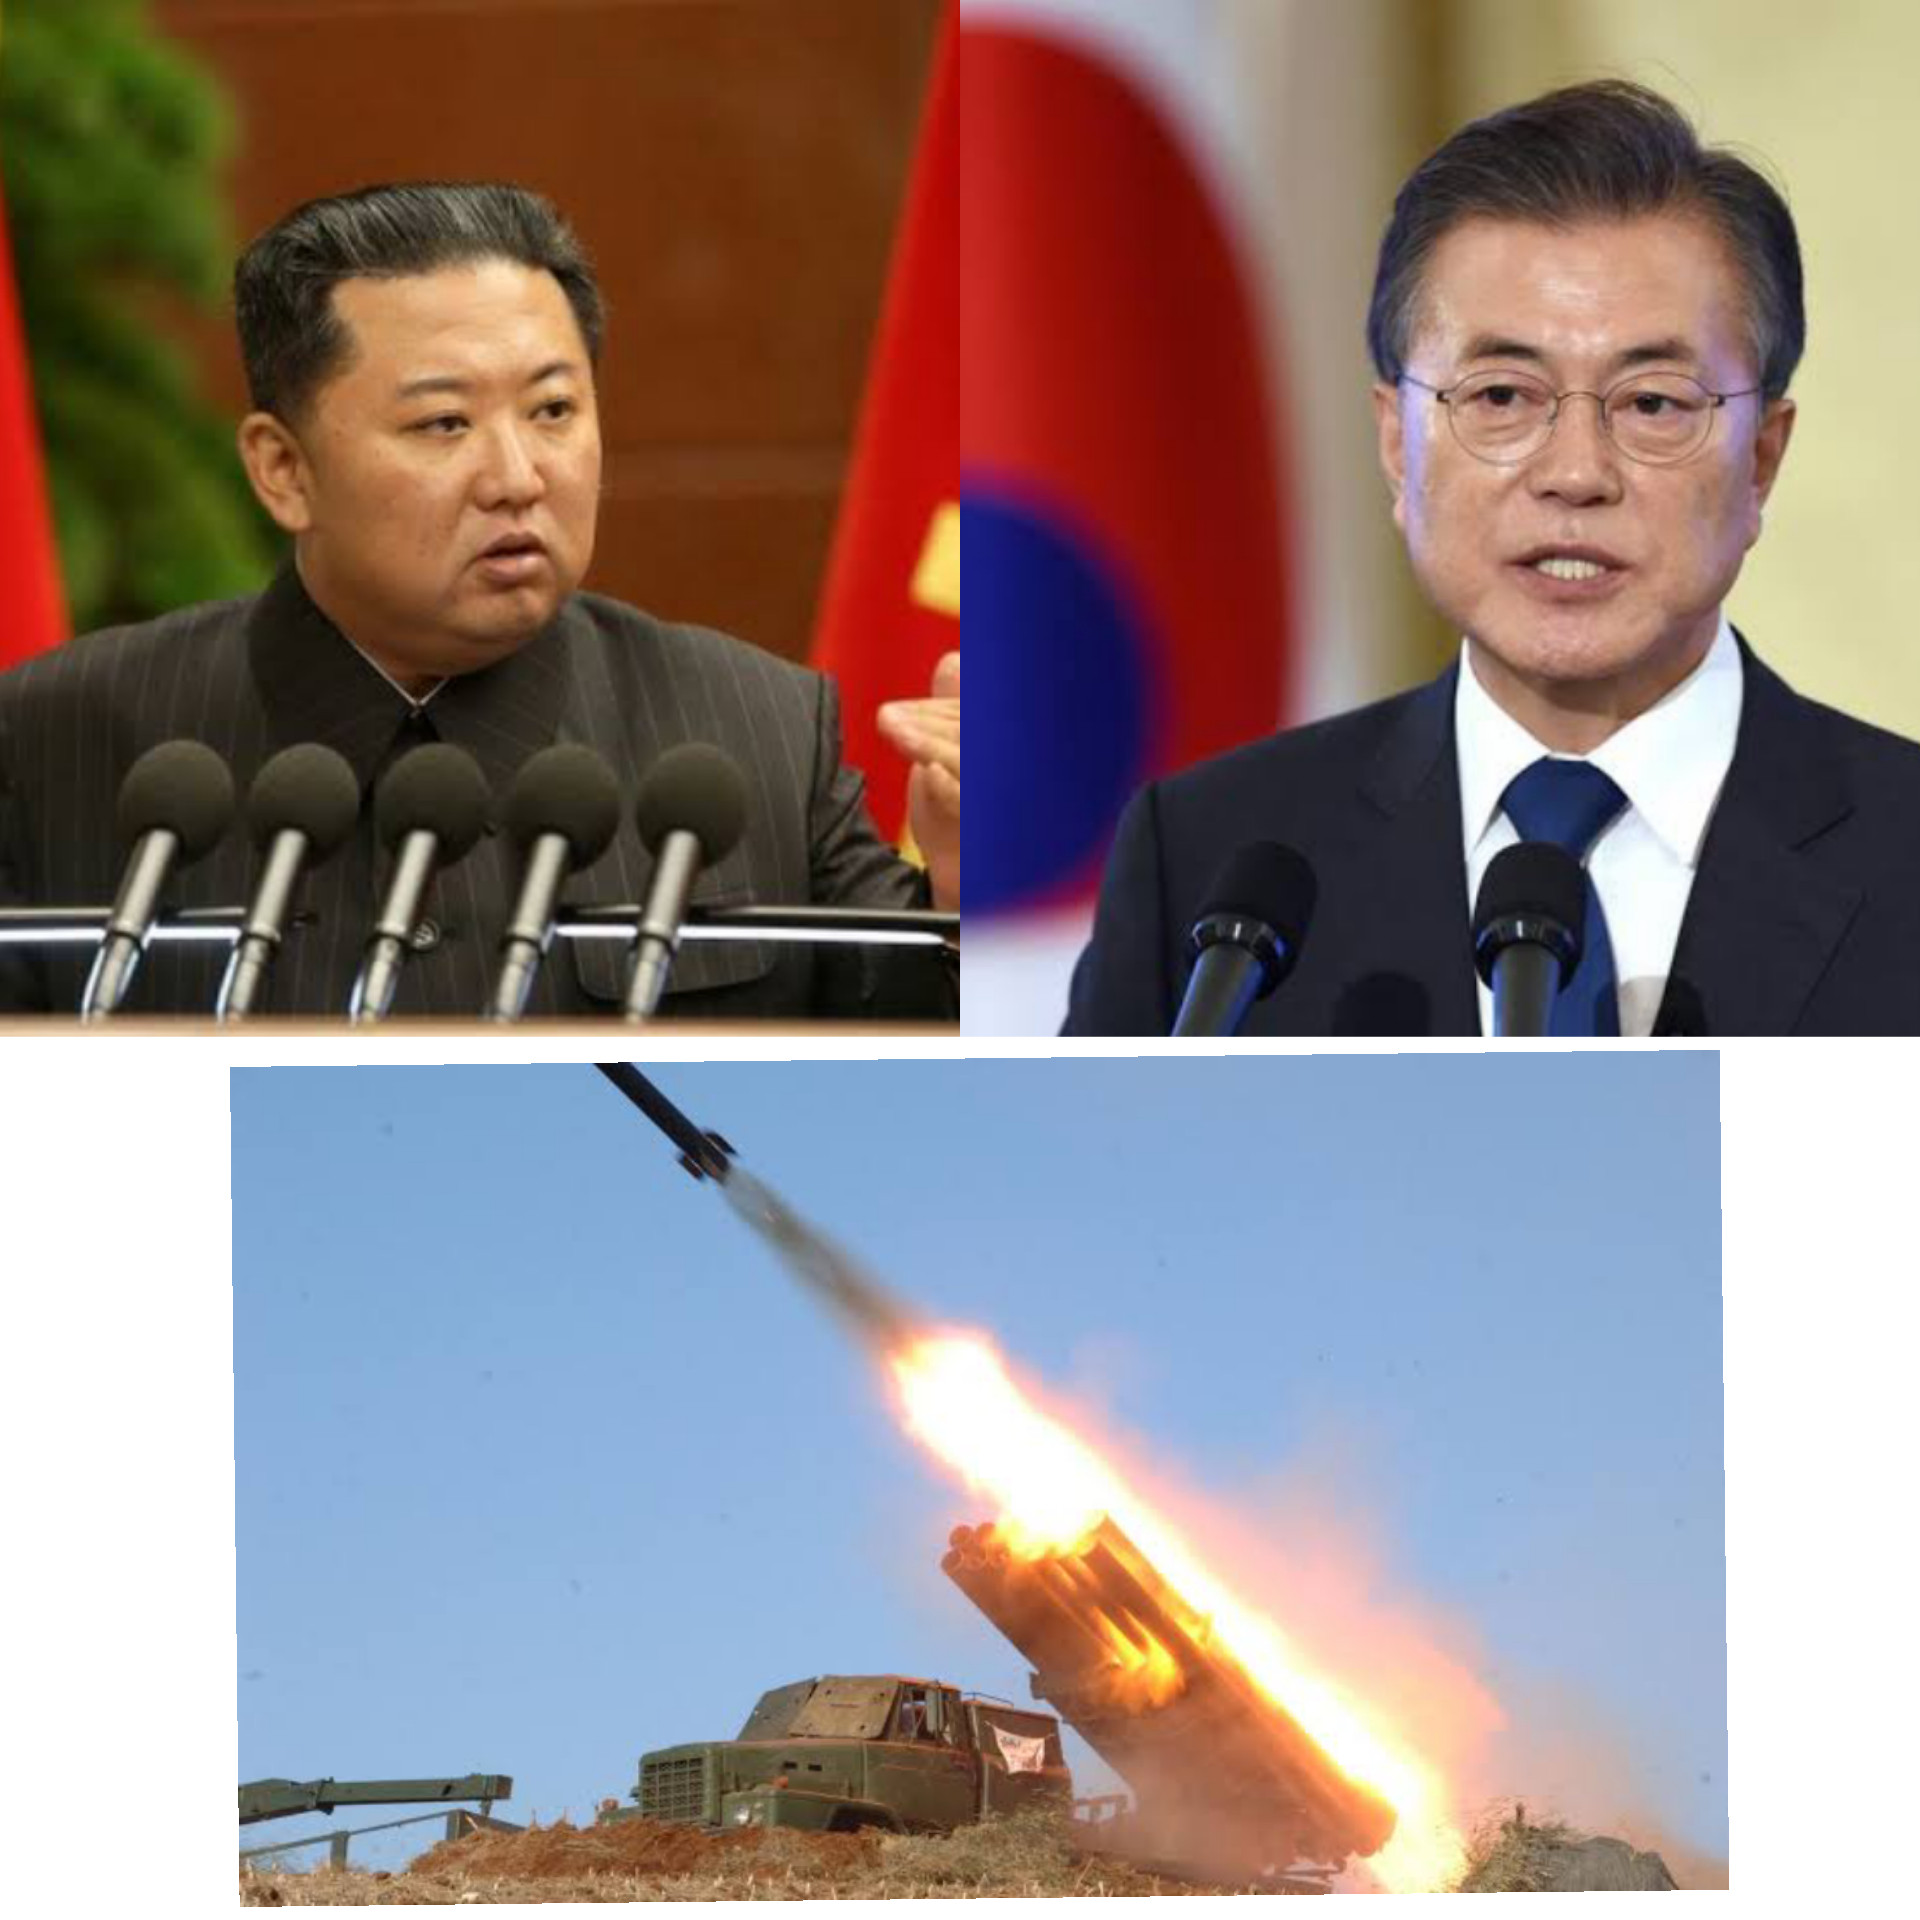 North Korea fires missiles, South Korea responds hours later with new submarine launched missiles